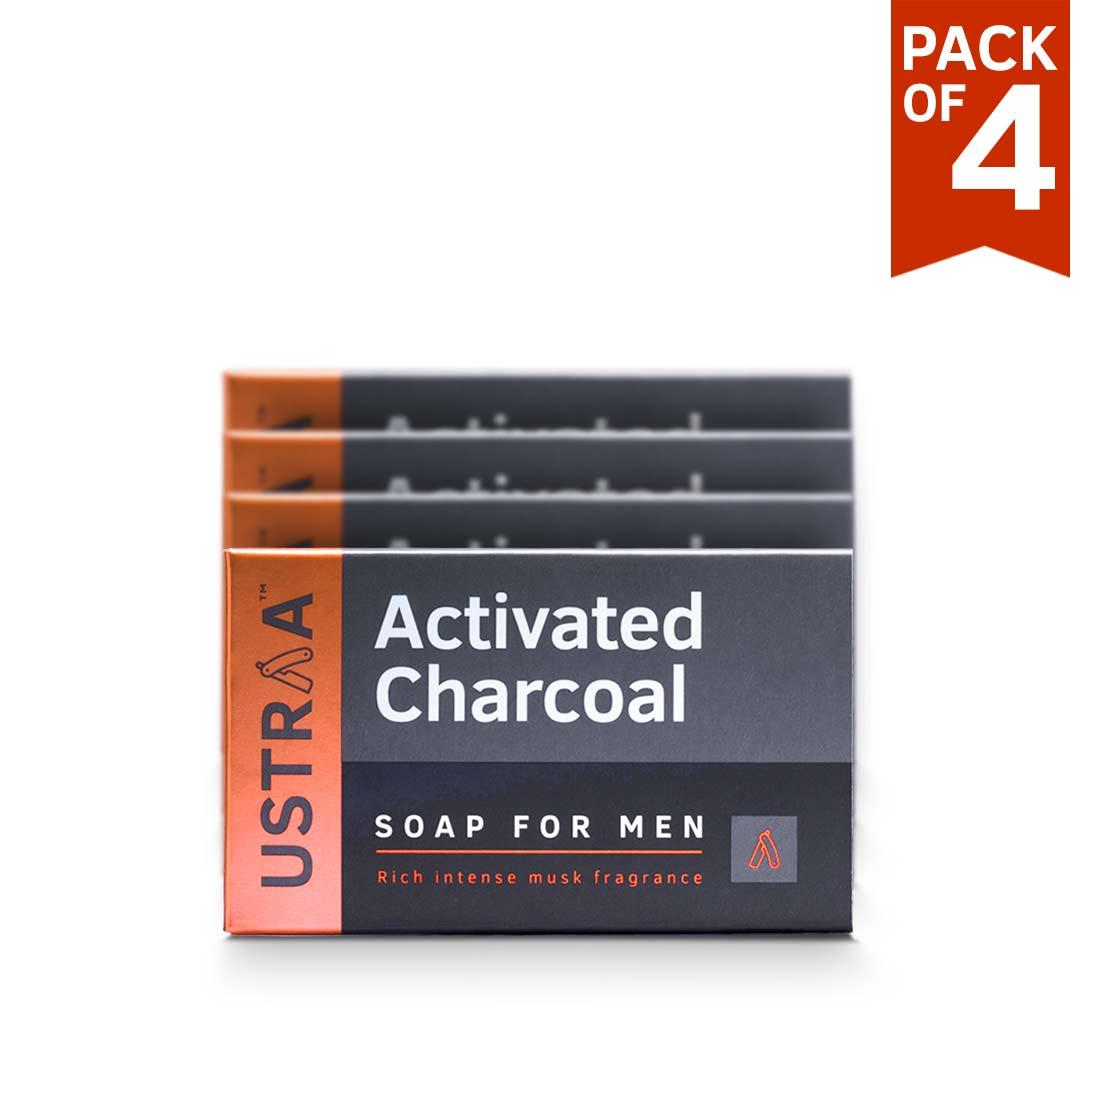 Ustraa Deo Soap for Men with Activated Charcoal (100g): Pack of 4